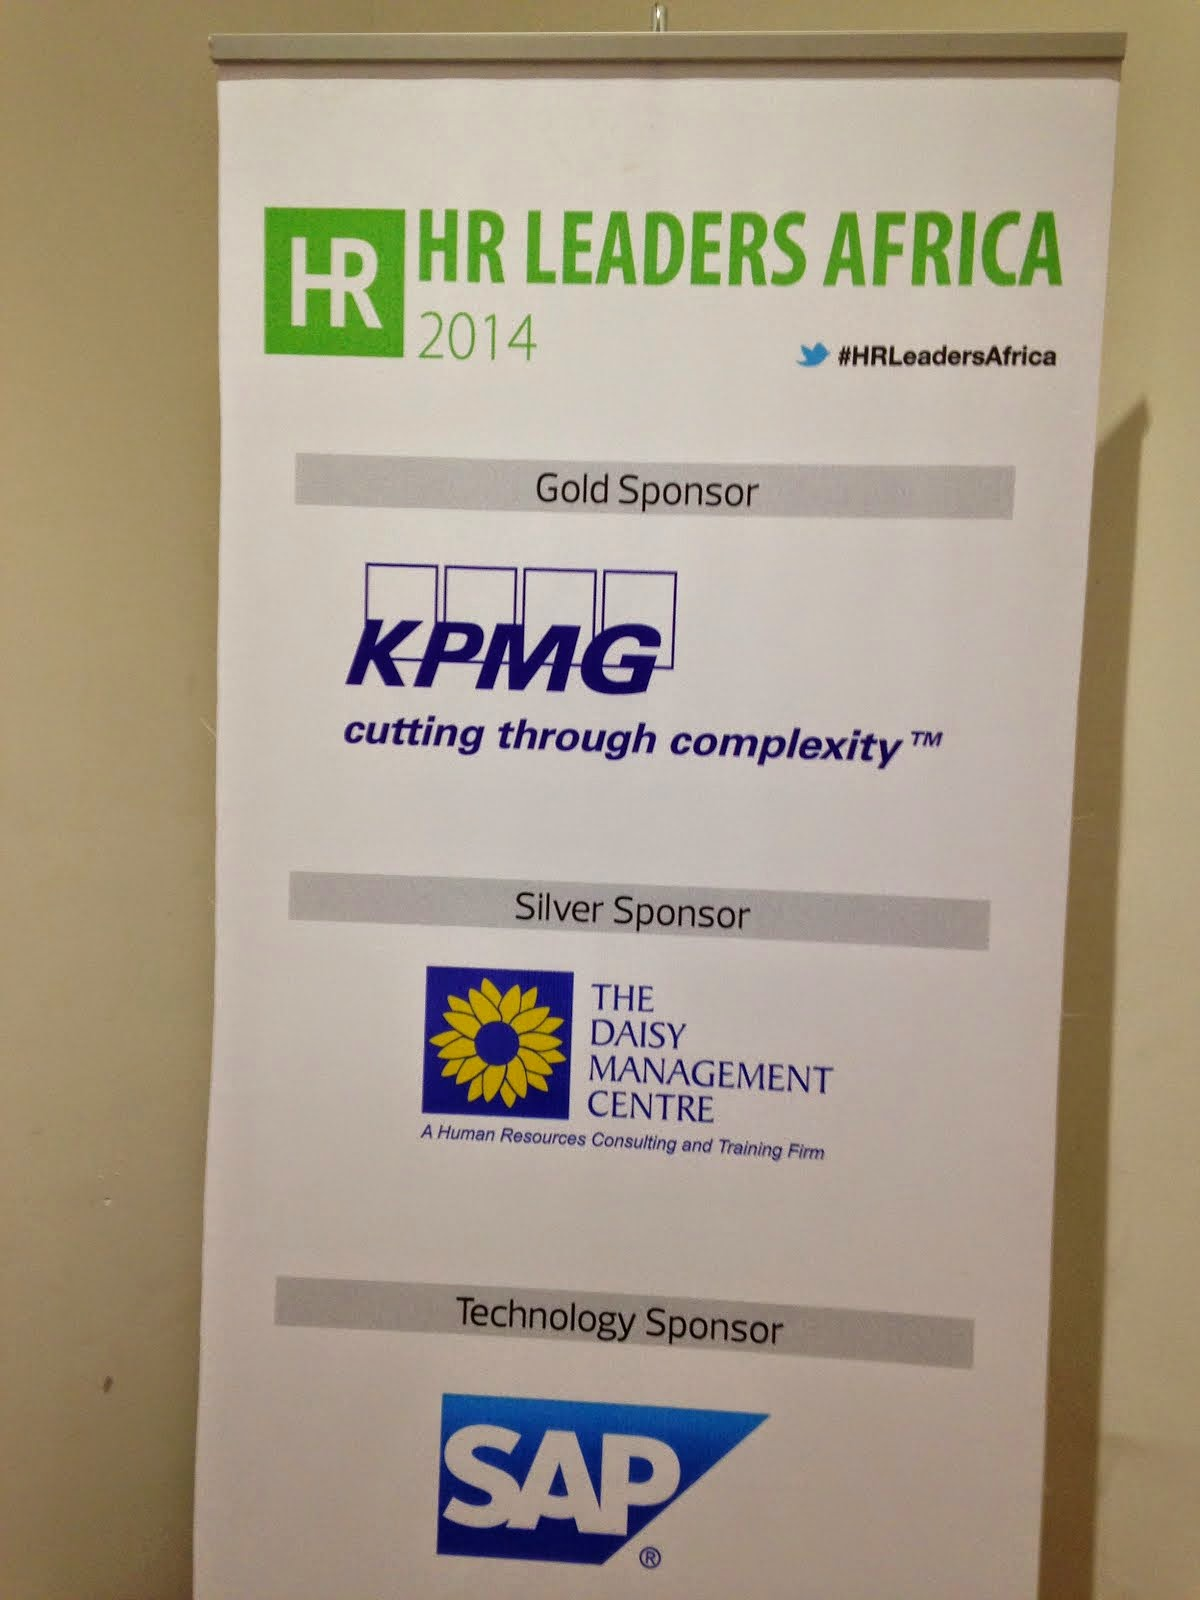 HR Leaders in Africa Conference, Lagos Nigeria, June 9-11, 2014